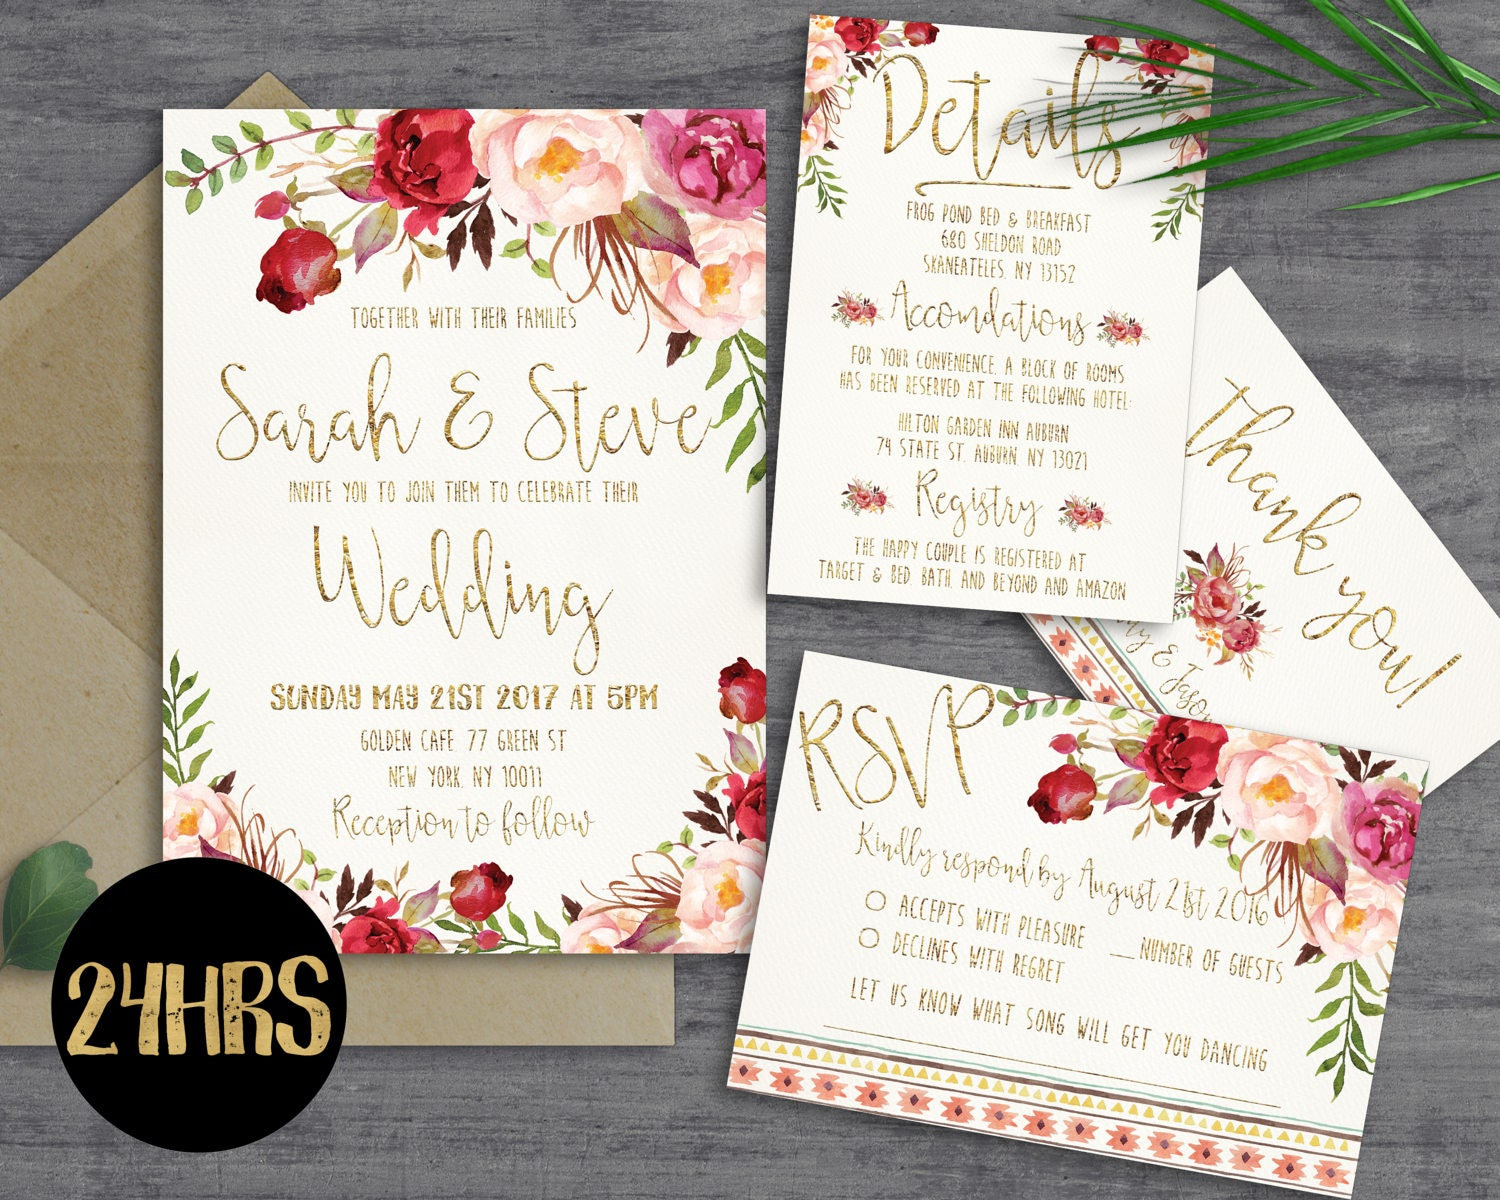 Printable Wedding Invitation Sets: Printable Wedding Invitation Wedding Invitations Set